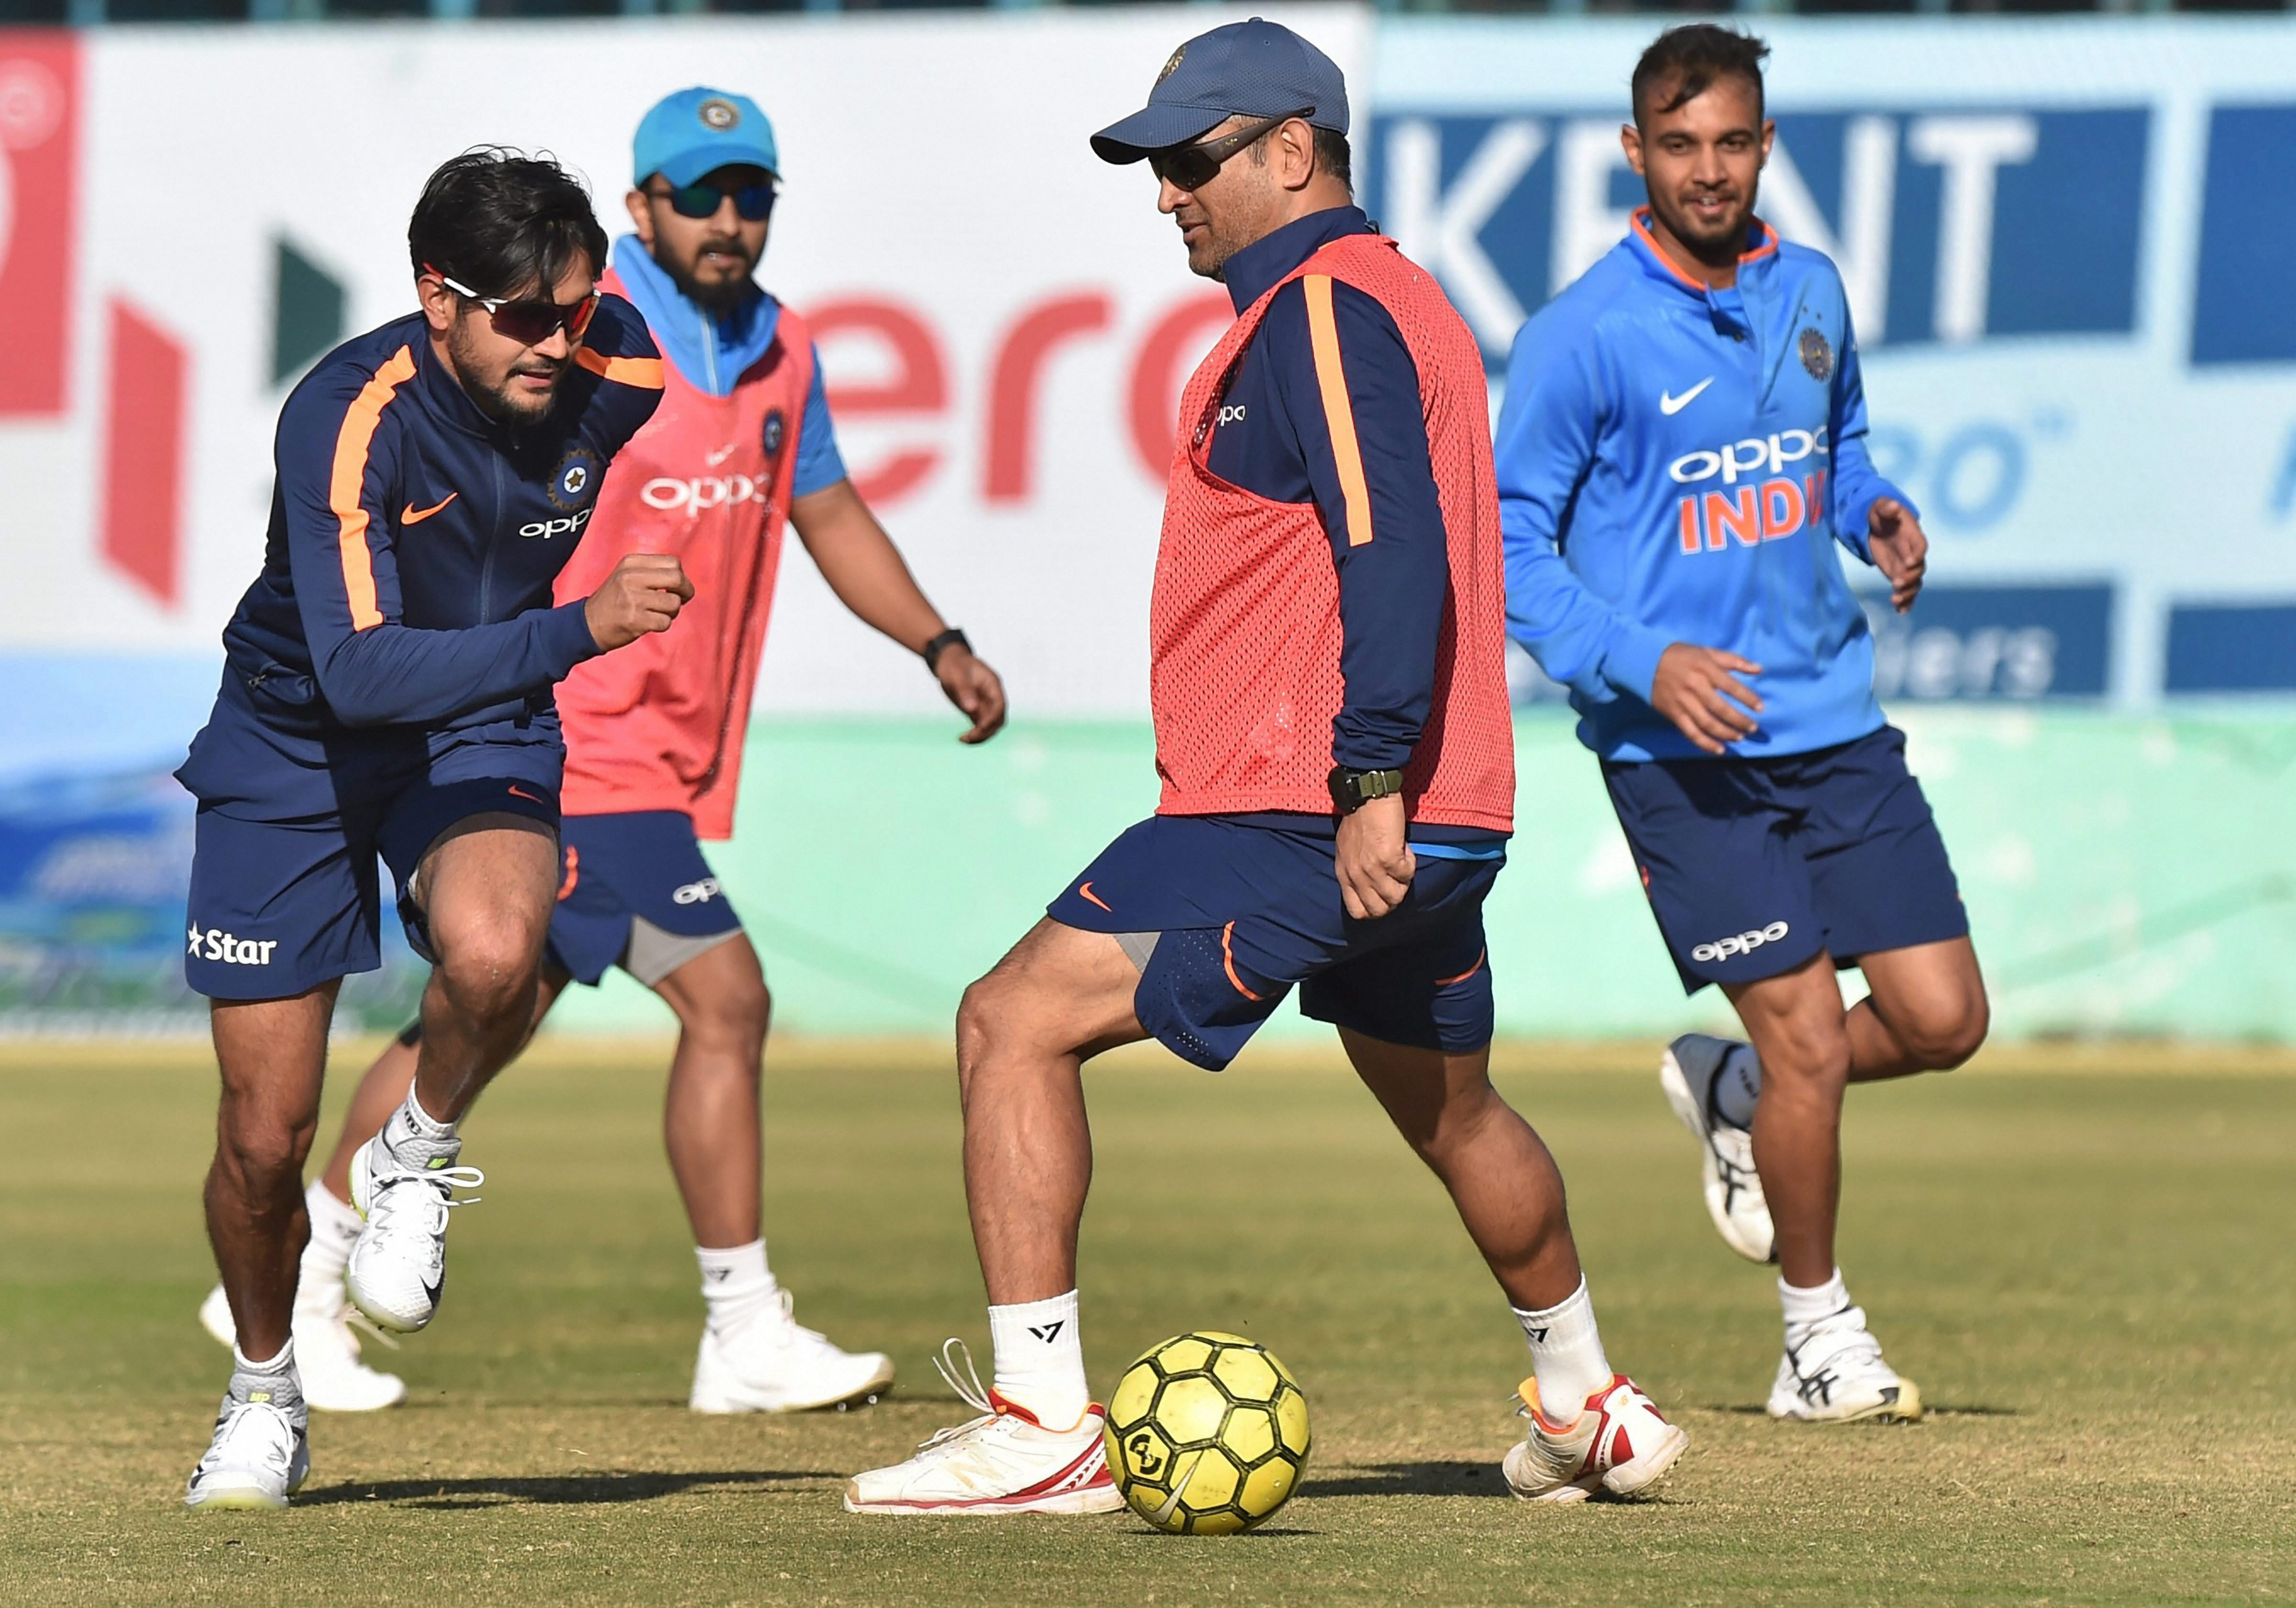 The aim of the MS Dhoni Cricket Academy is to make cricket a truly global sport. Photo courtesy: PTI